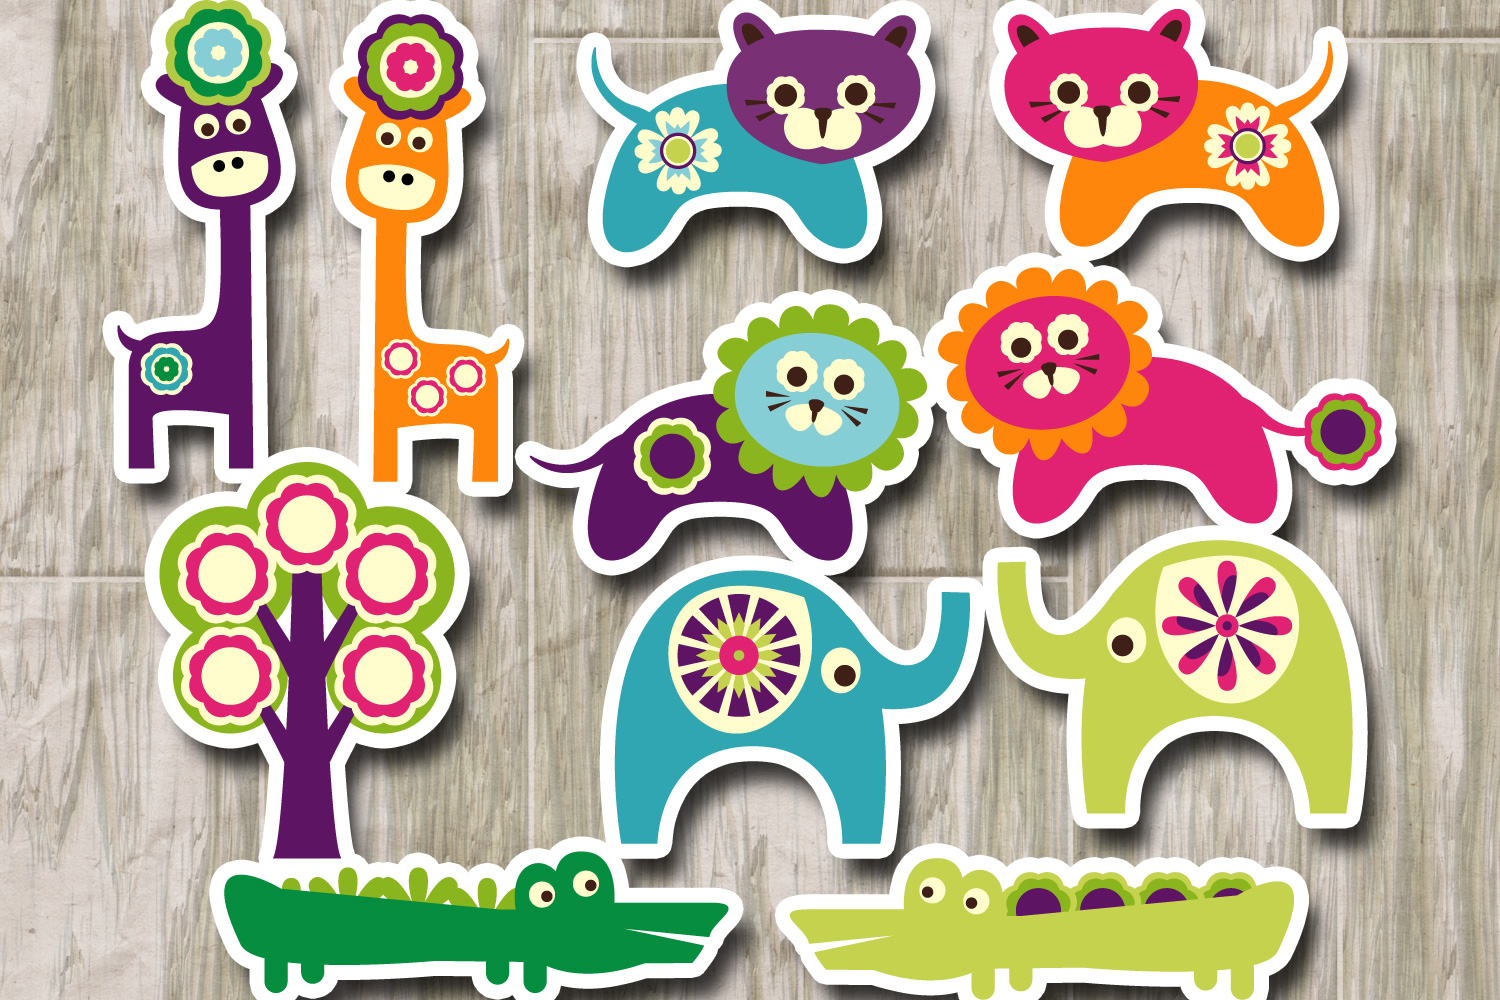 Spring zoo animals clipart graphic illustration example image 2